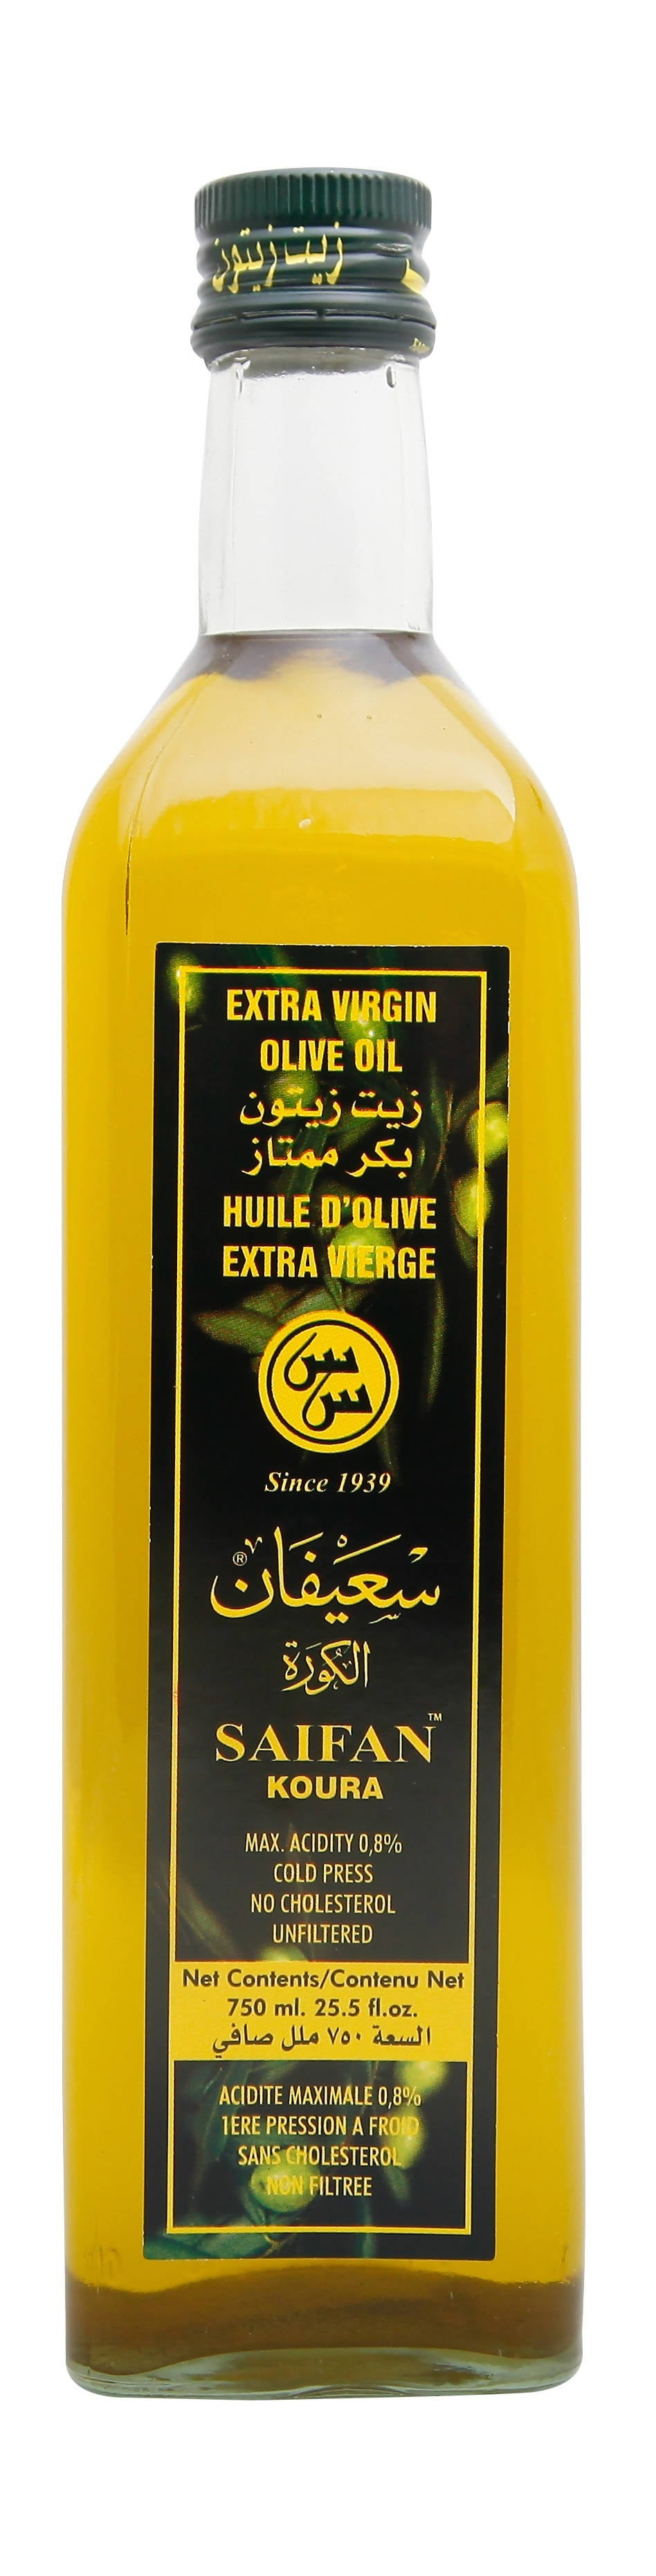 SAIFAN PREMIUM EXTRA VIRGIN OLIVE OIL 750 ML